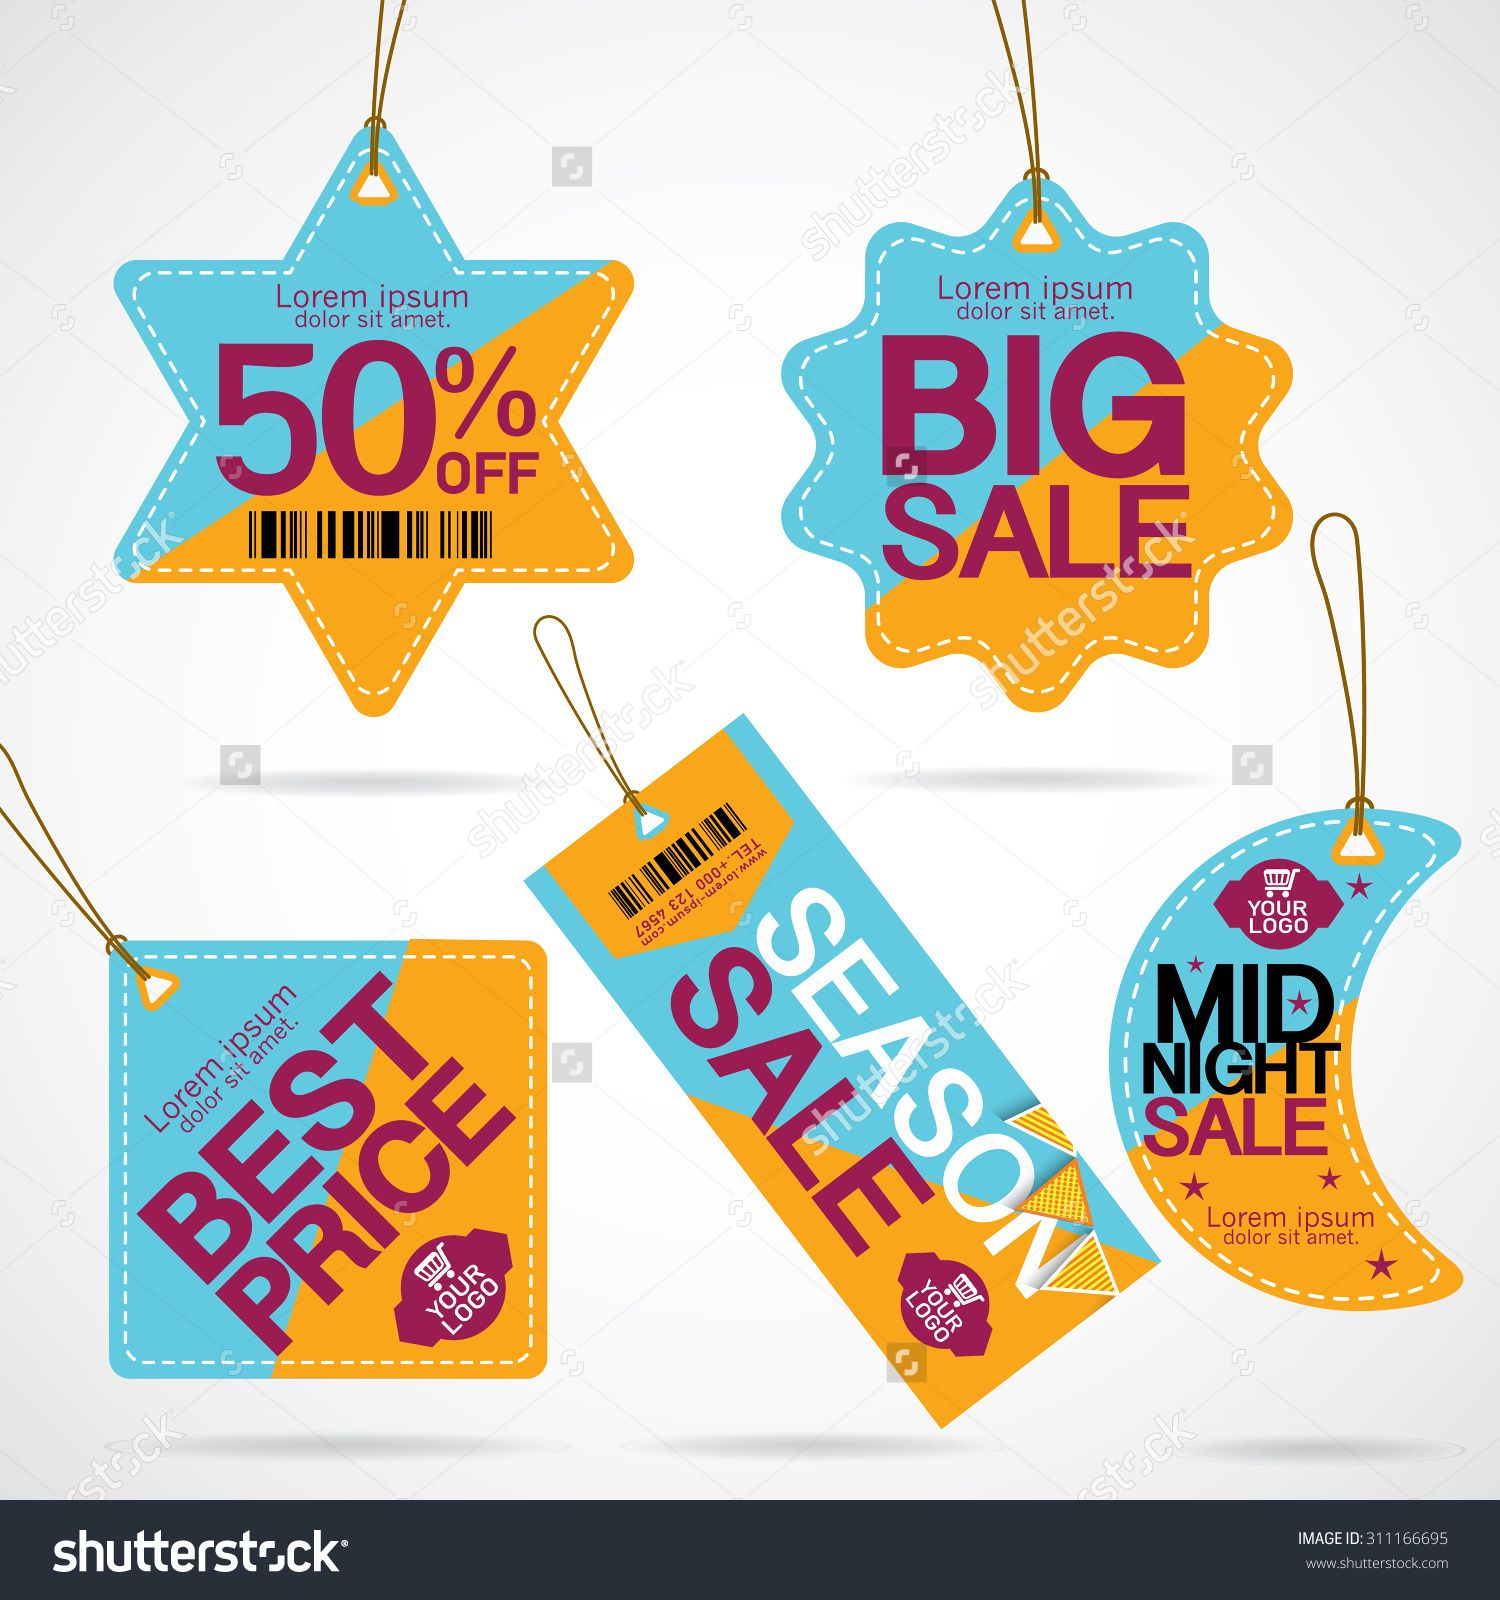 Price Tags Design With Best Discount Offers Special Price